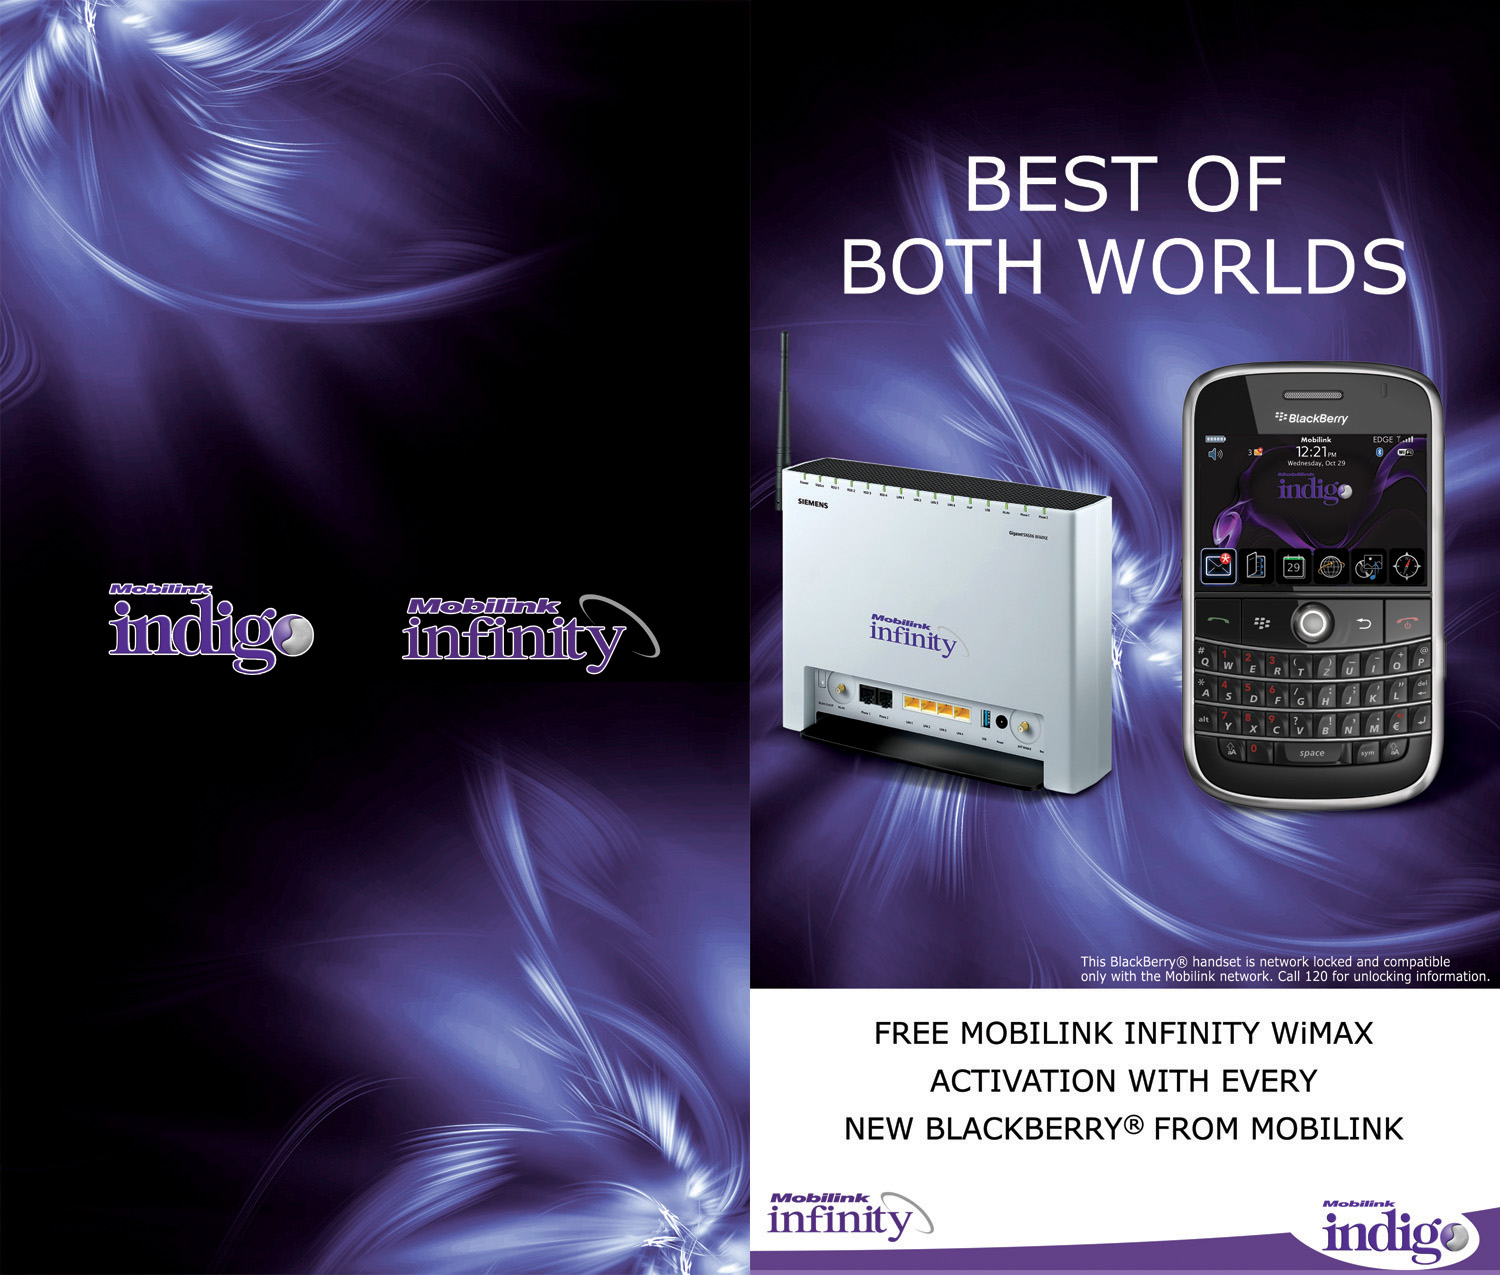 PR: Mobilink Infinity WiMAX & Blackberry Bundle Offer